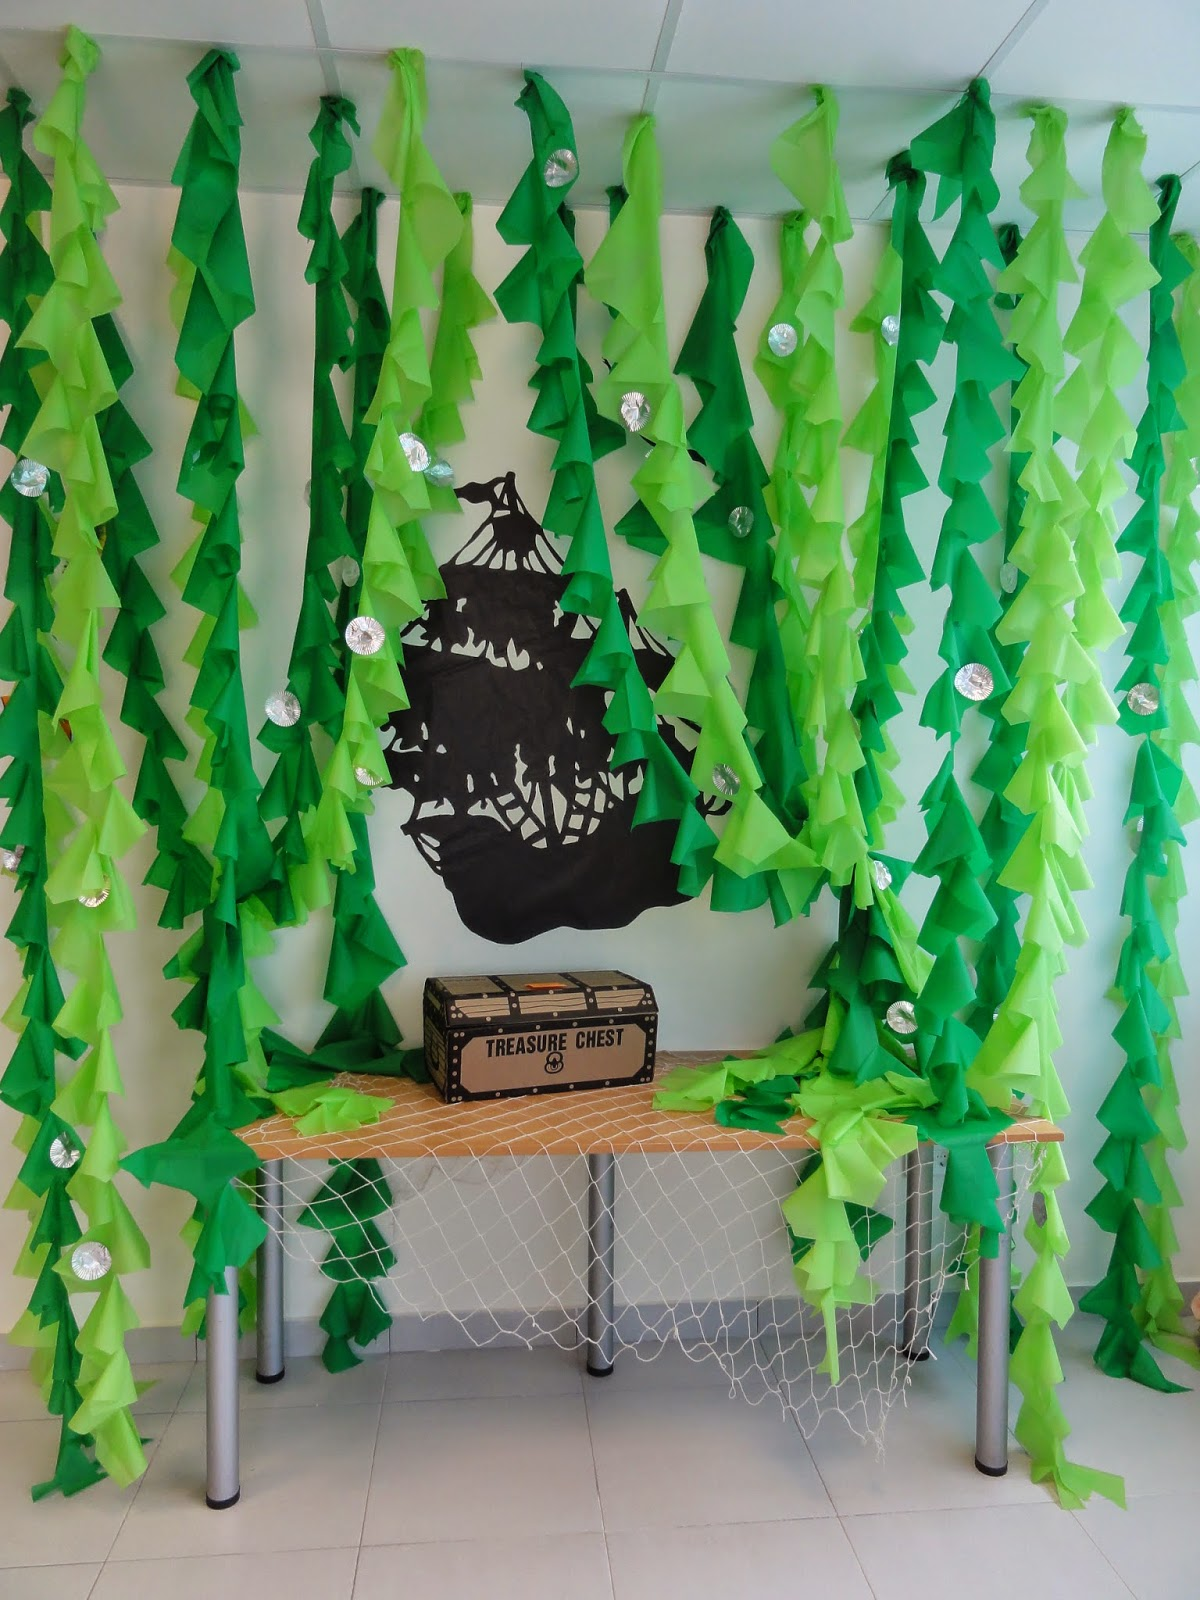 DSC06859 Ocean Themed Clroom Decorations on